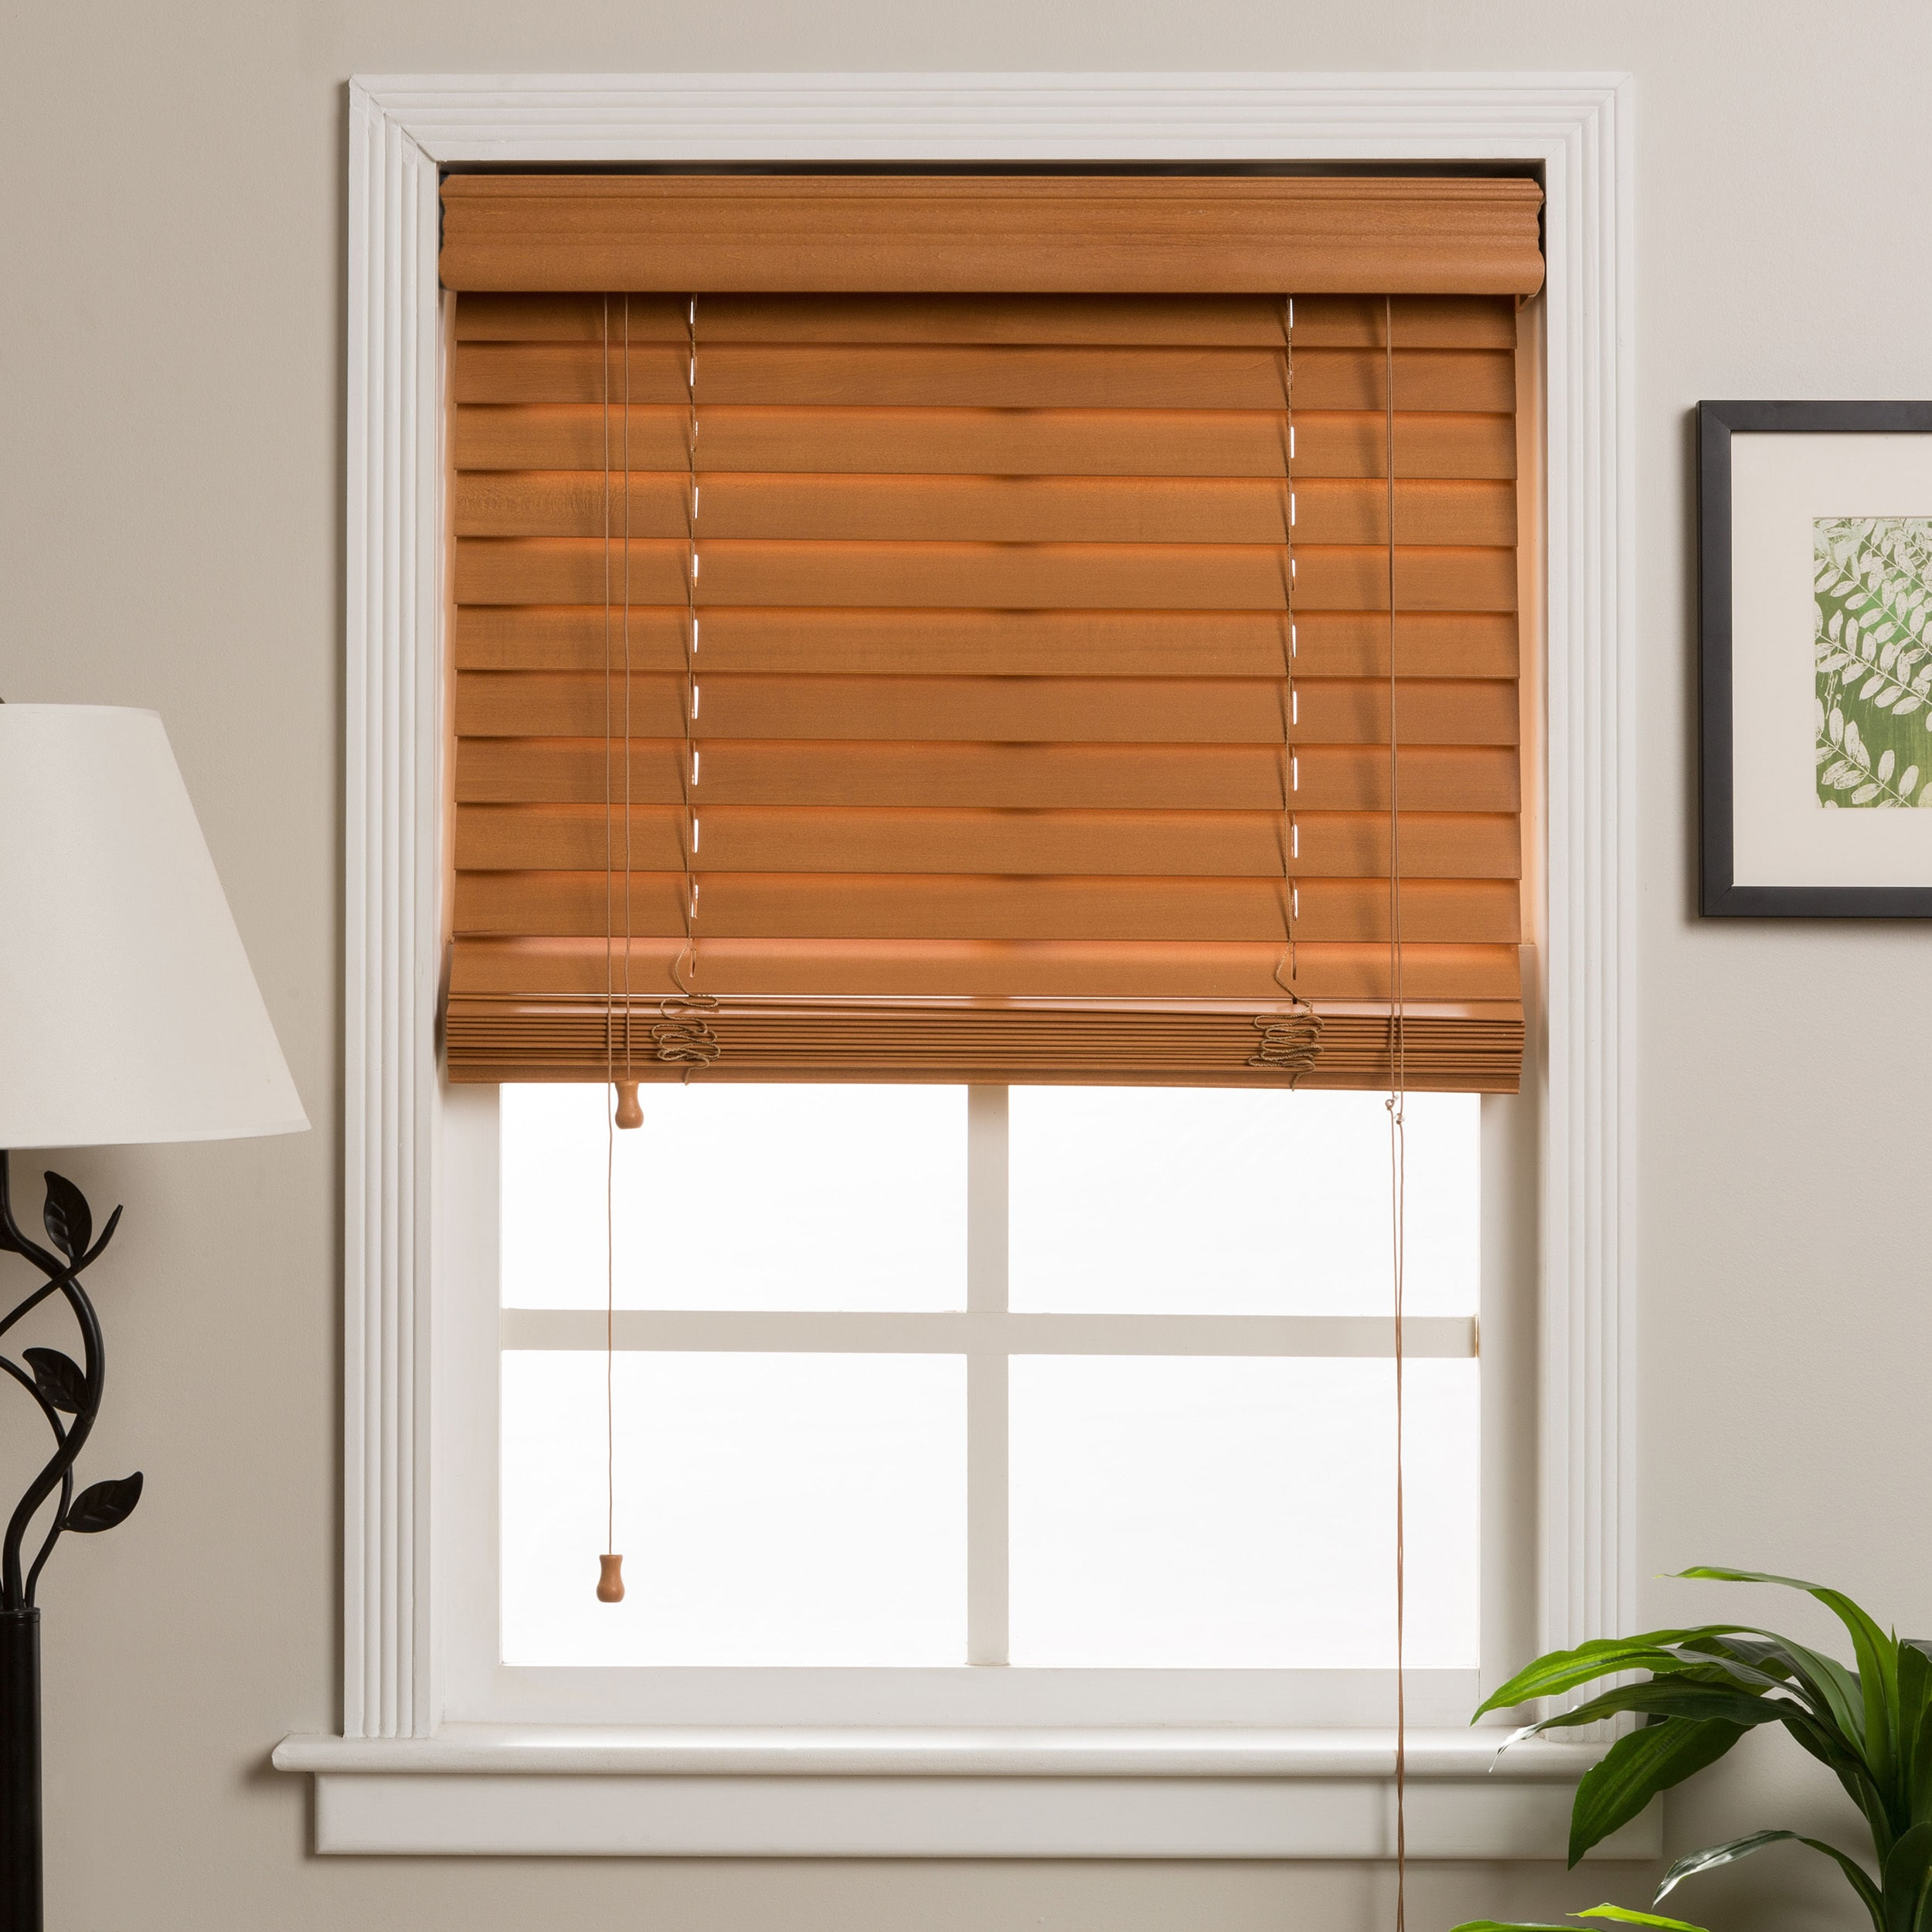 real overstock blinds product inch shipping home wood customized free garden arlo today window